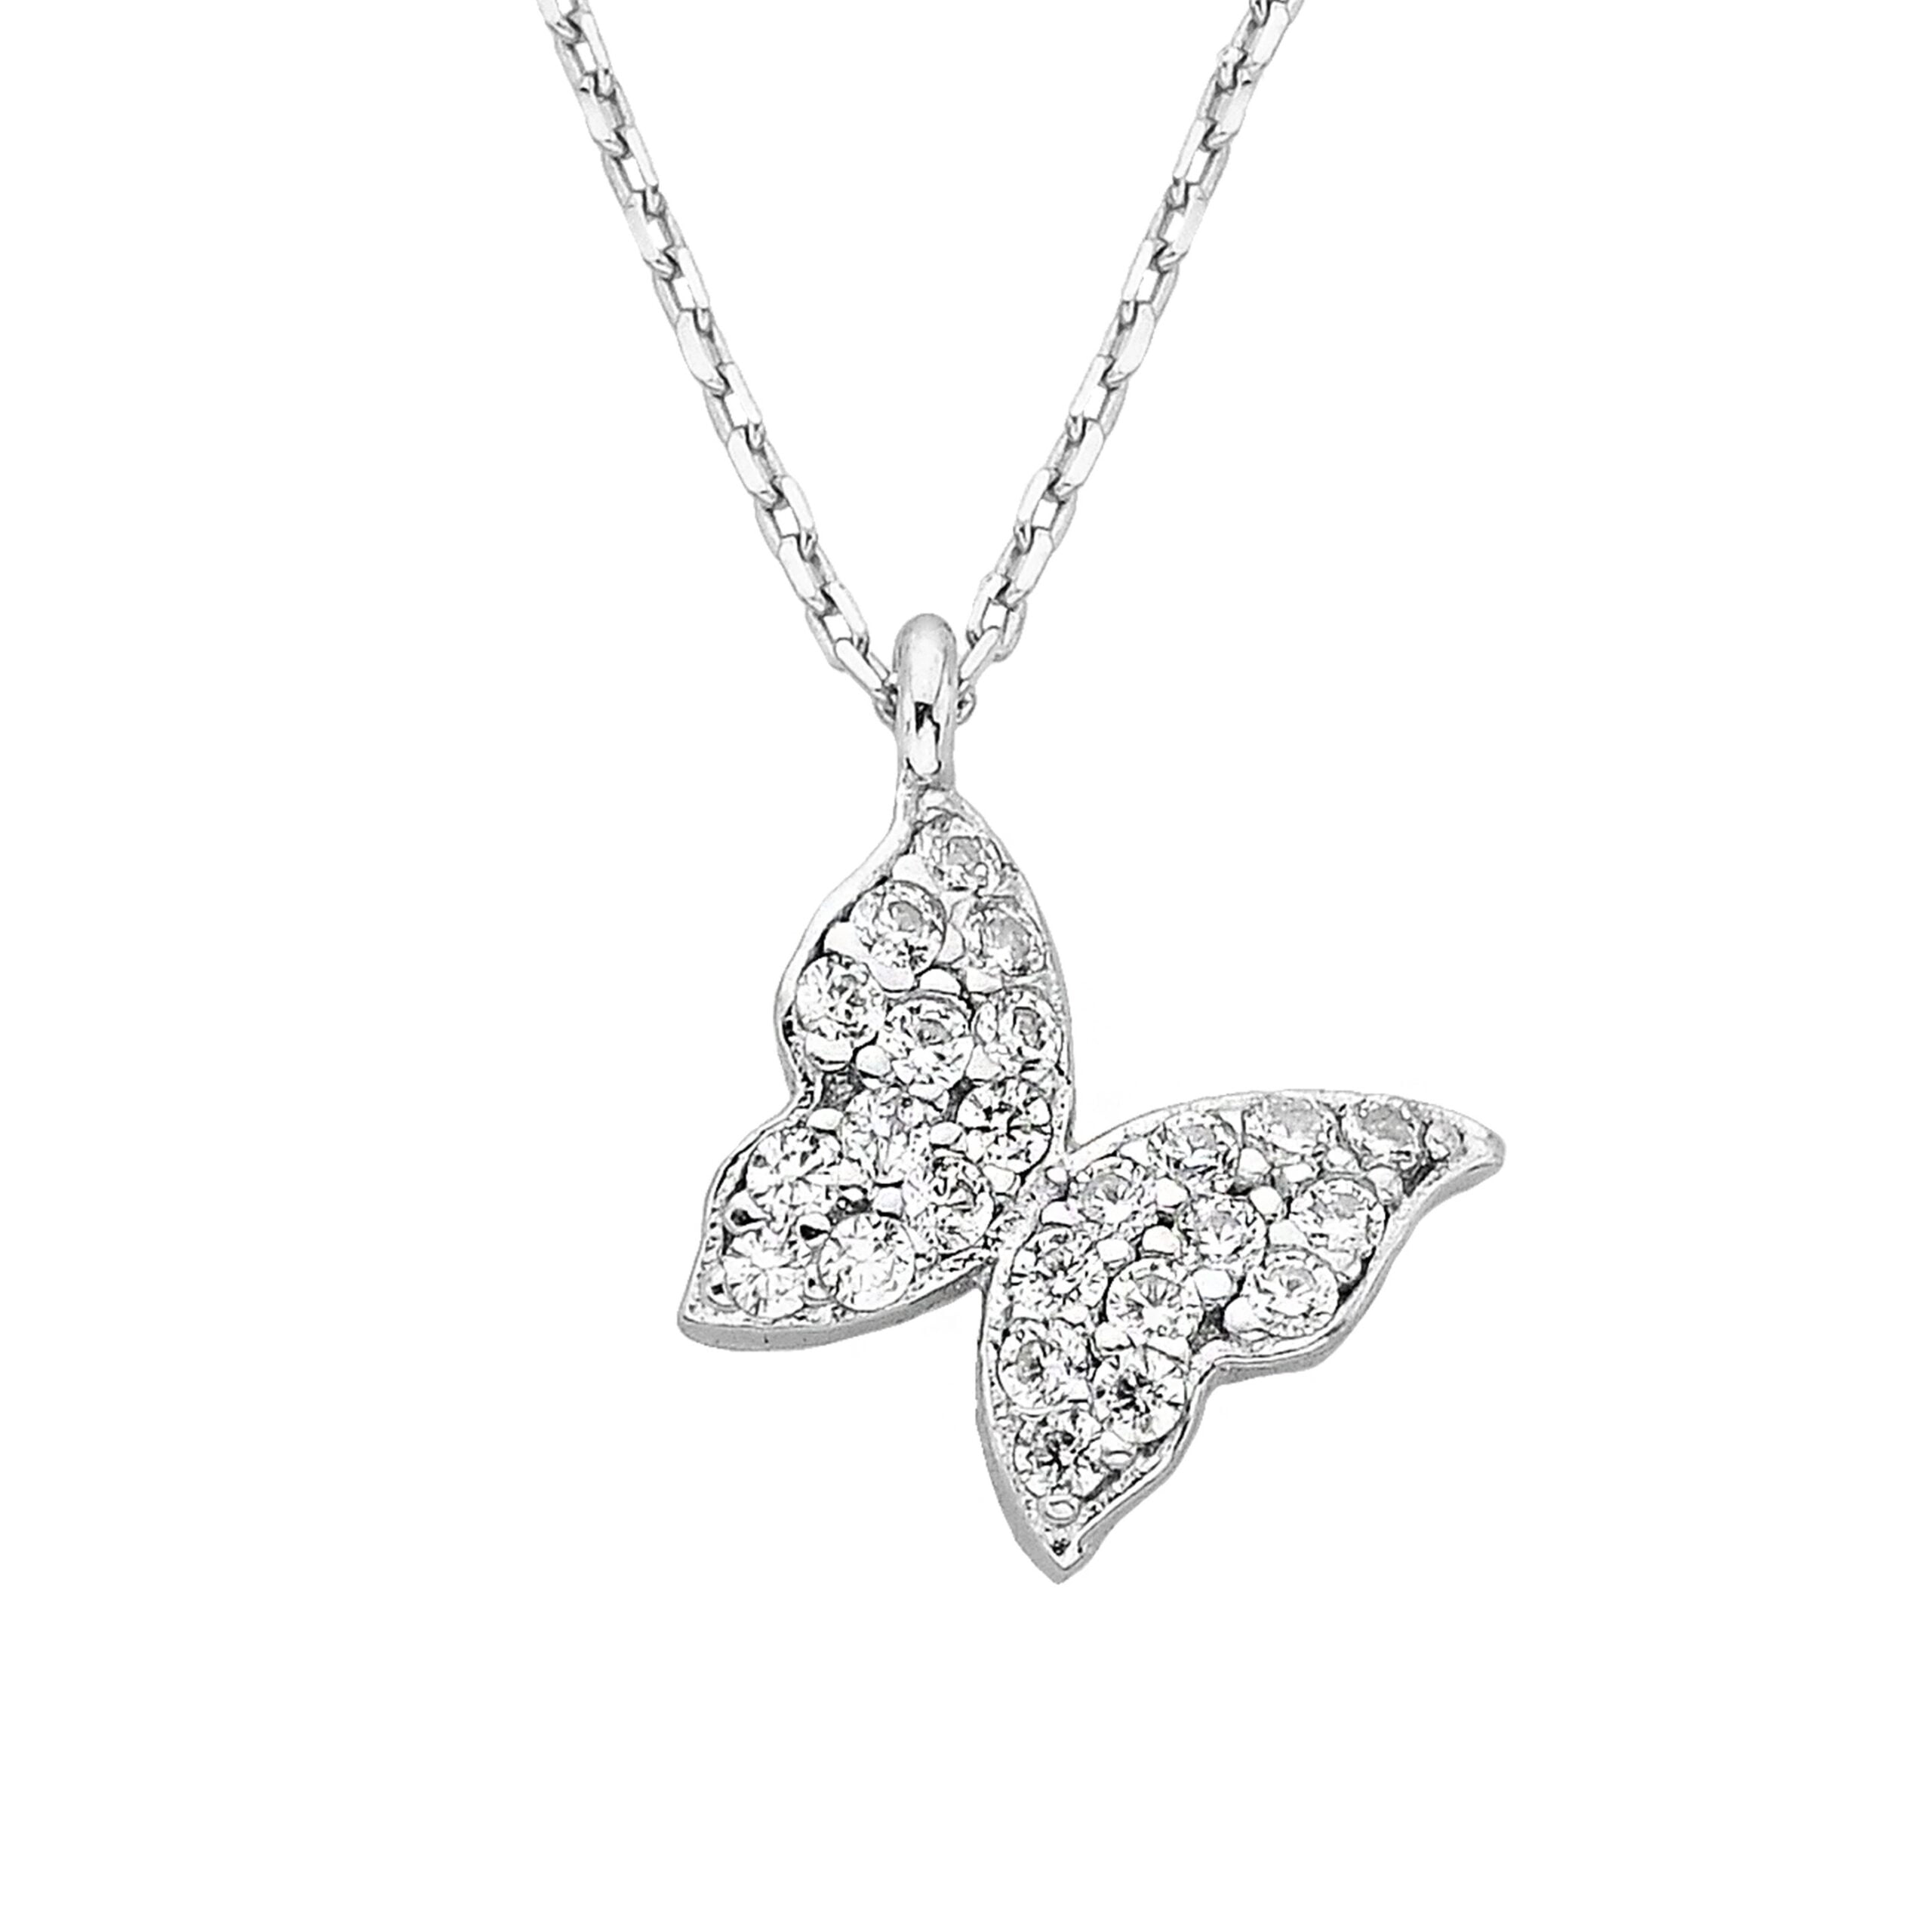 14K Real Solid Gold Butterfly Necklace | Charm Dainty Trendy CZ Pendant | Best Birthday Gift for Women White Gold